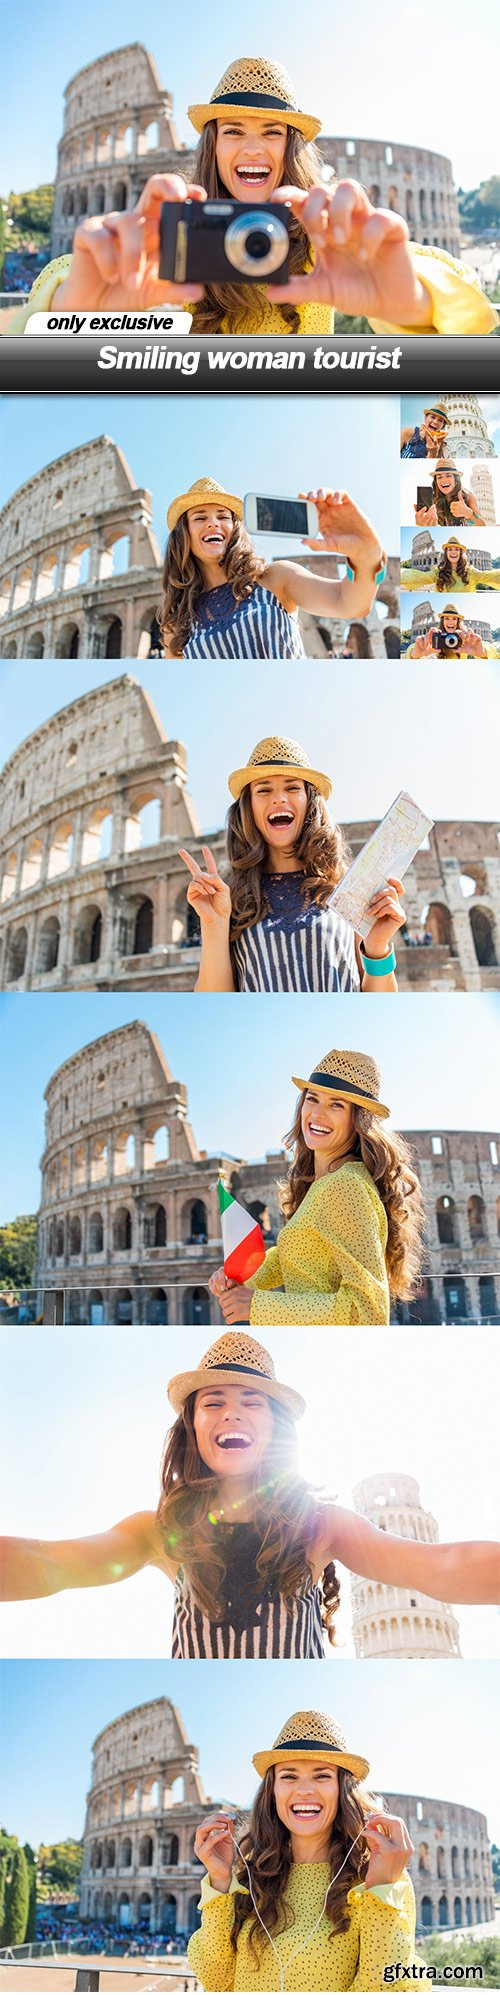 Smiling woman tourist - 9 UHQ JPEG